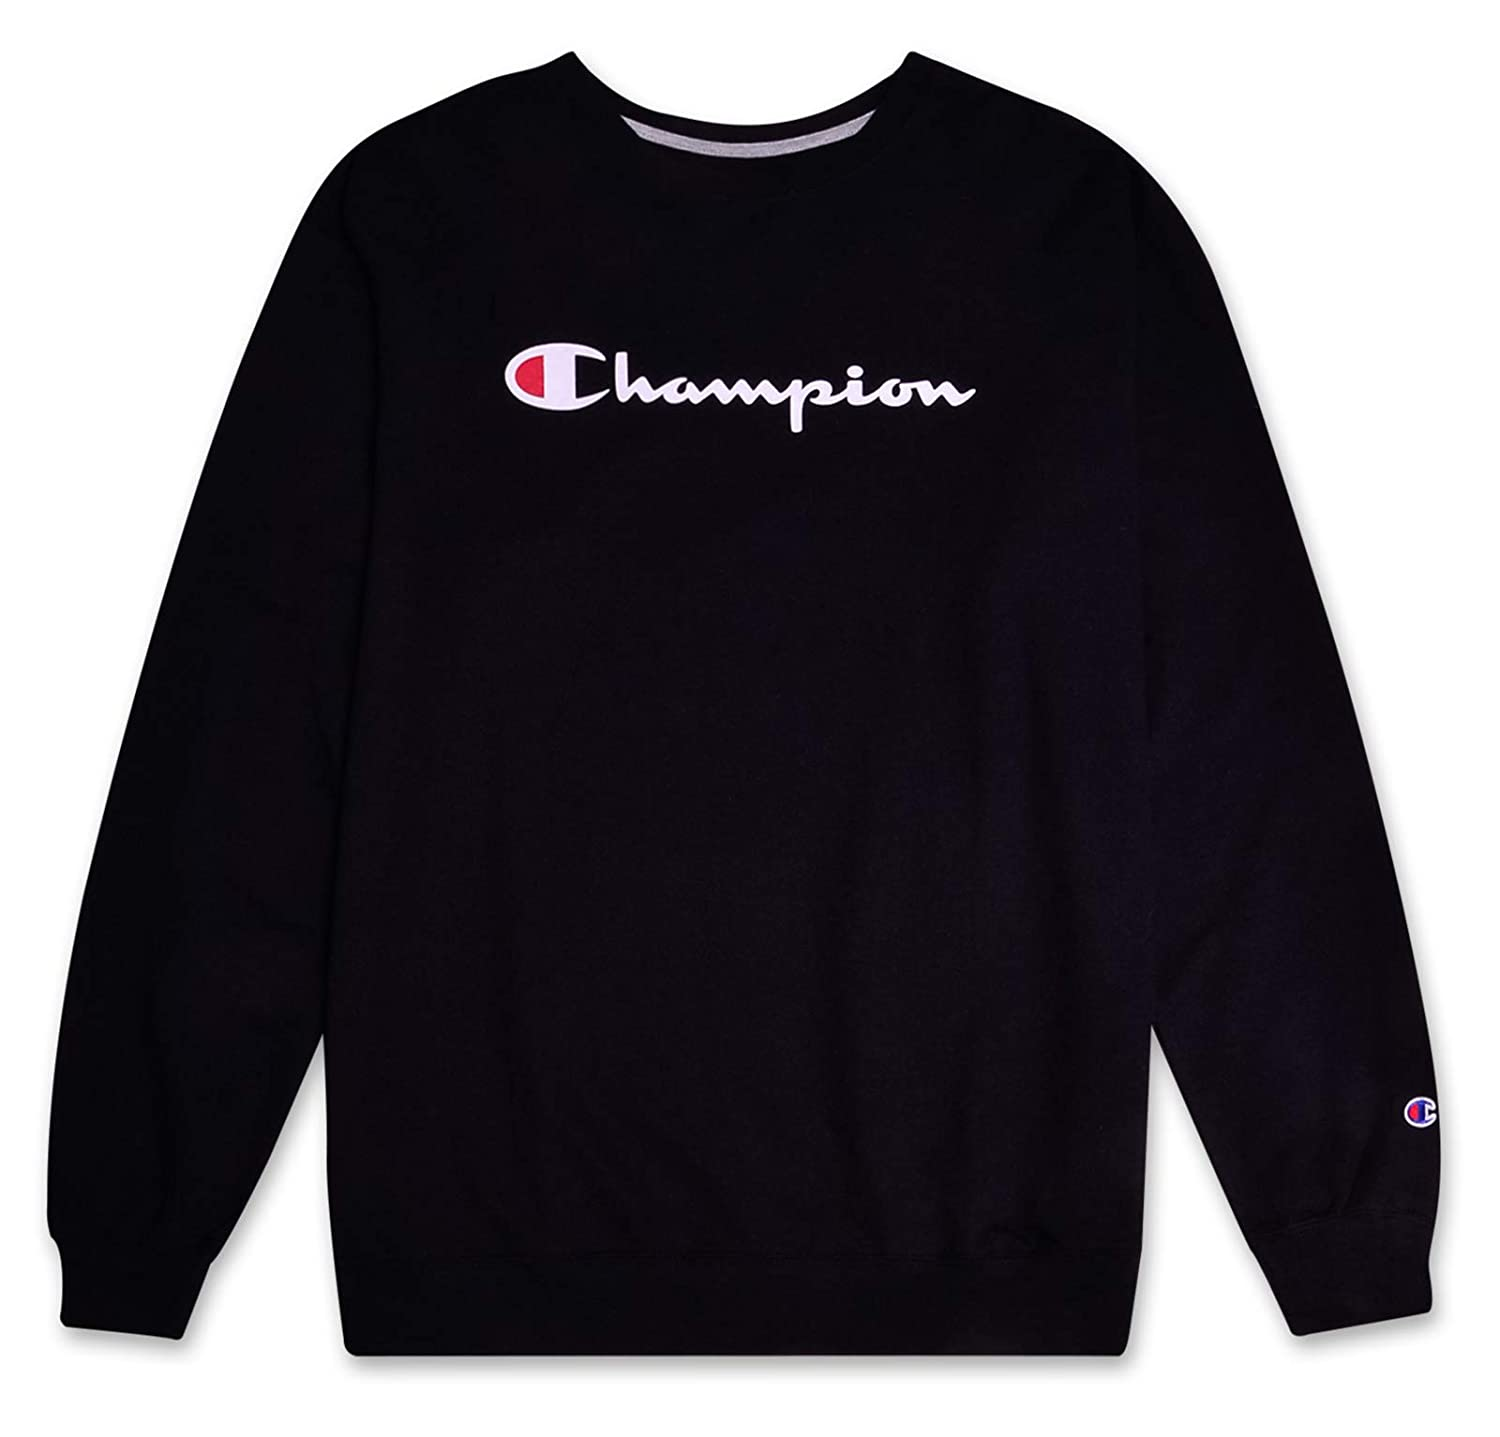 9d970abc Classic Champion script logo printed chest. Sweatshirts come in assorted  colors. This long sleeve sweat shirt feautres superSoft french terry  material